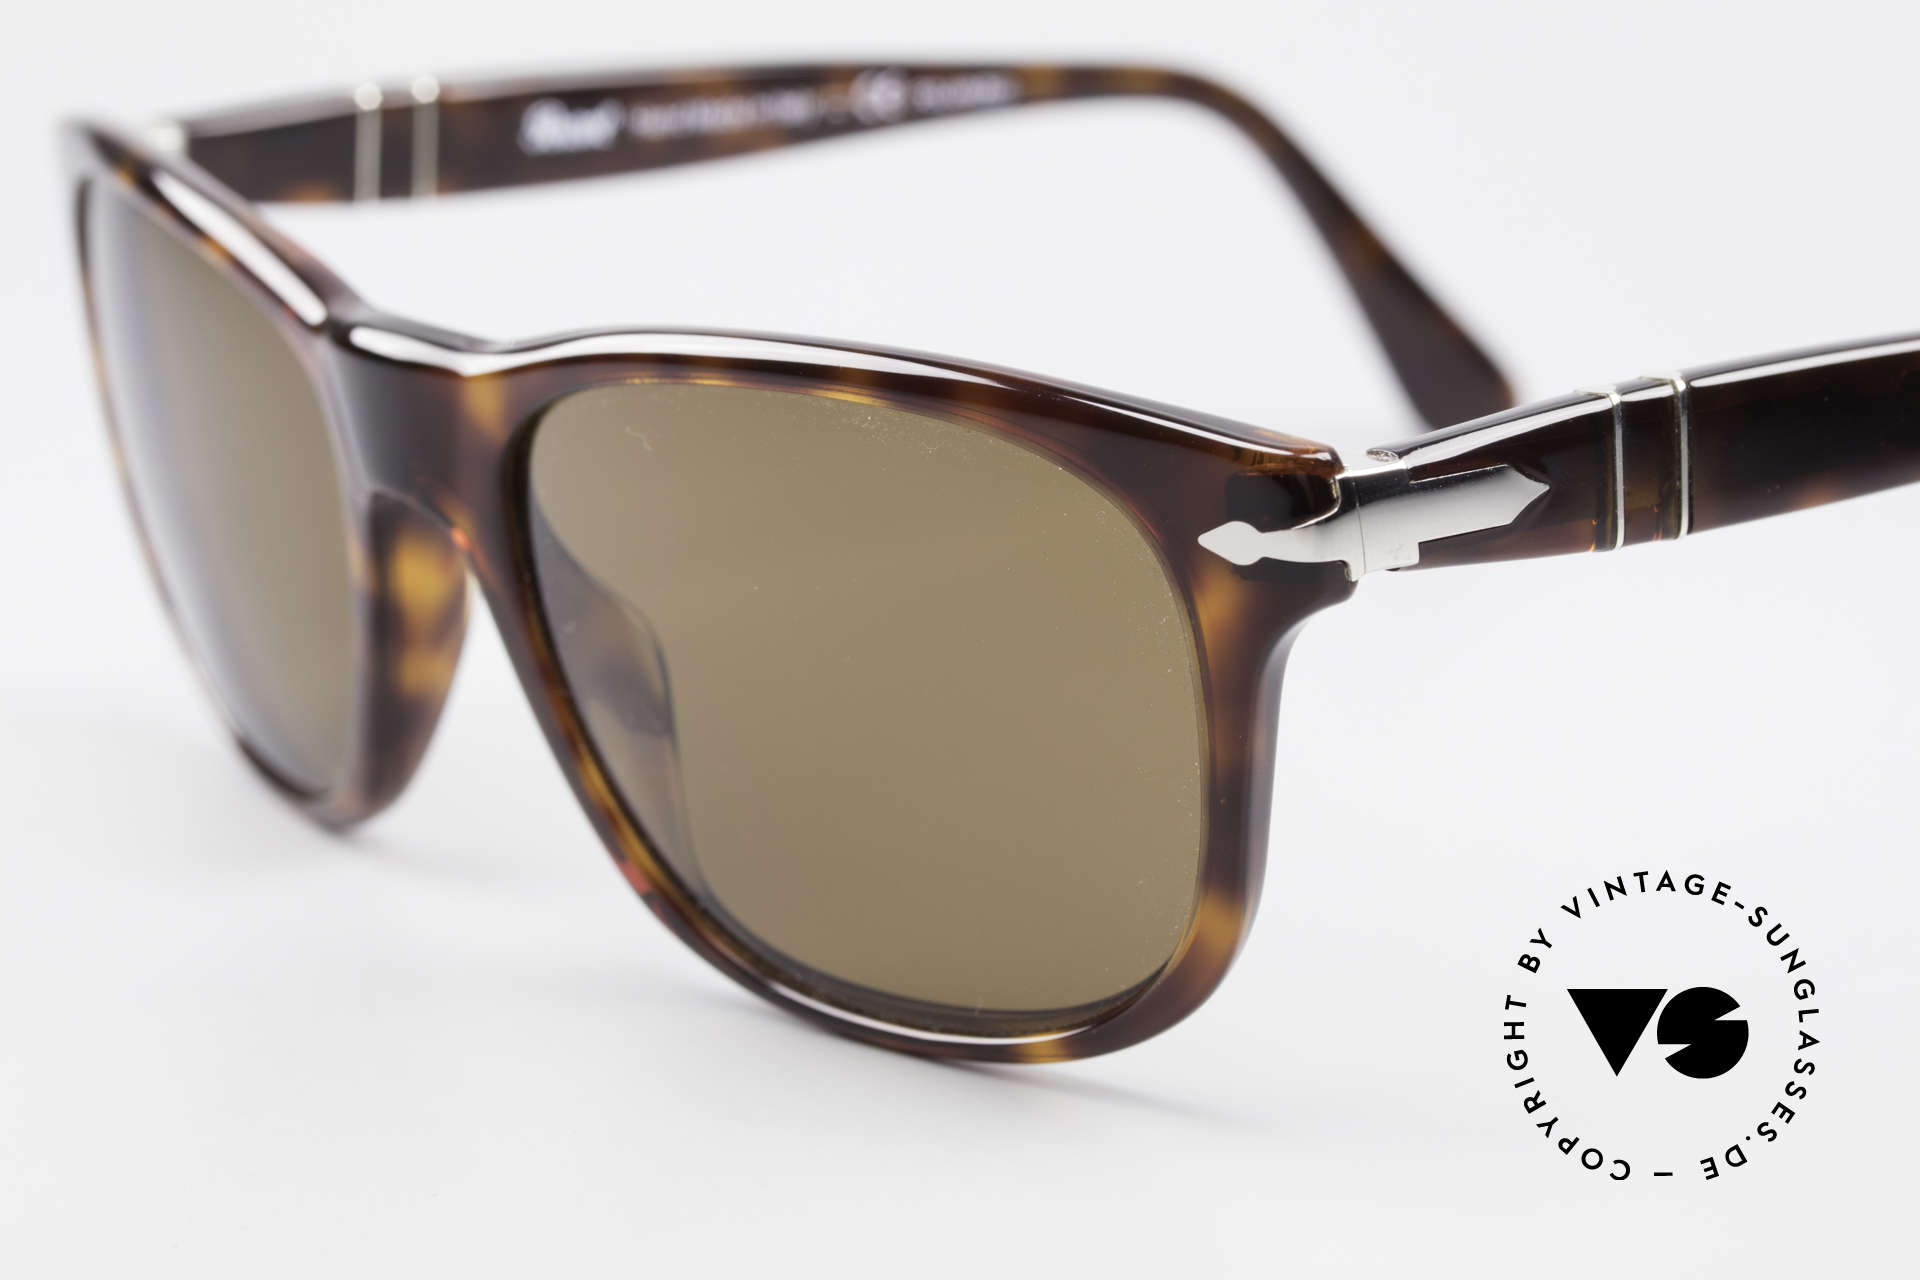 Persol 2989 Polarized Sunglasses Vintage, unworn (like all our vintage PERSOL glasses), Made for Men and Women